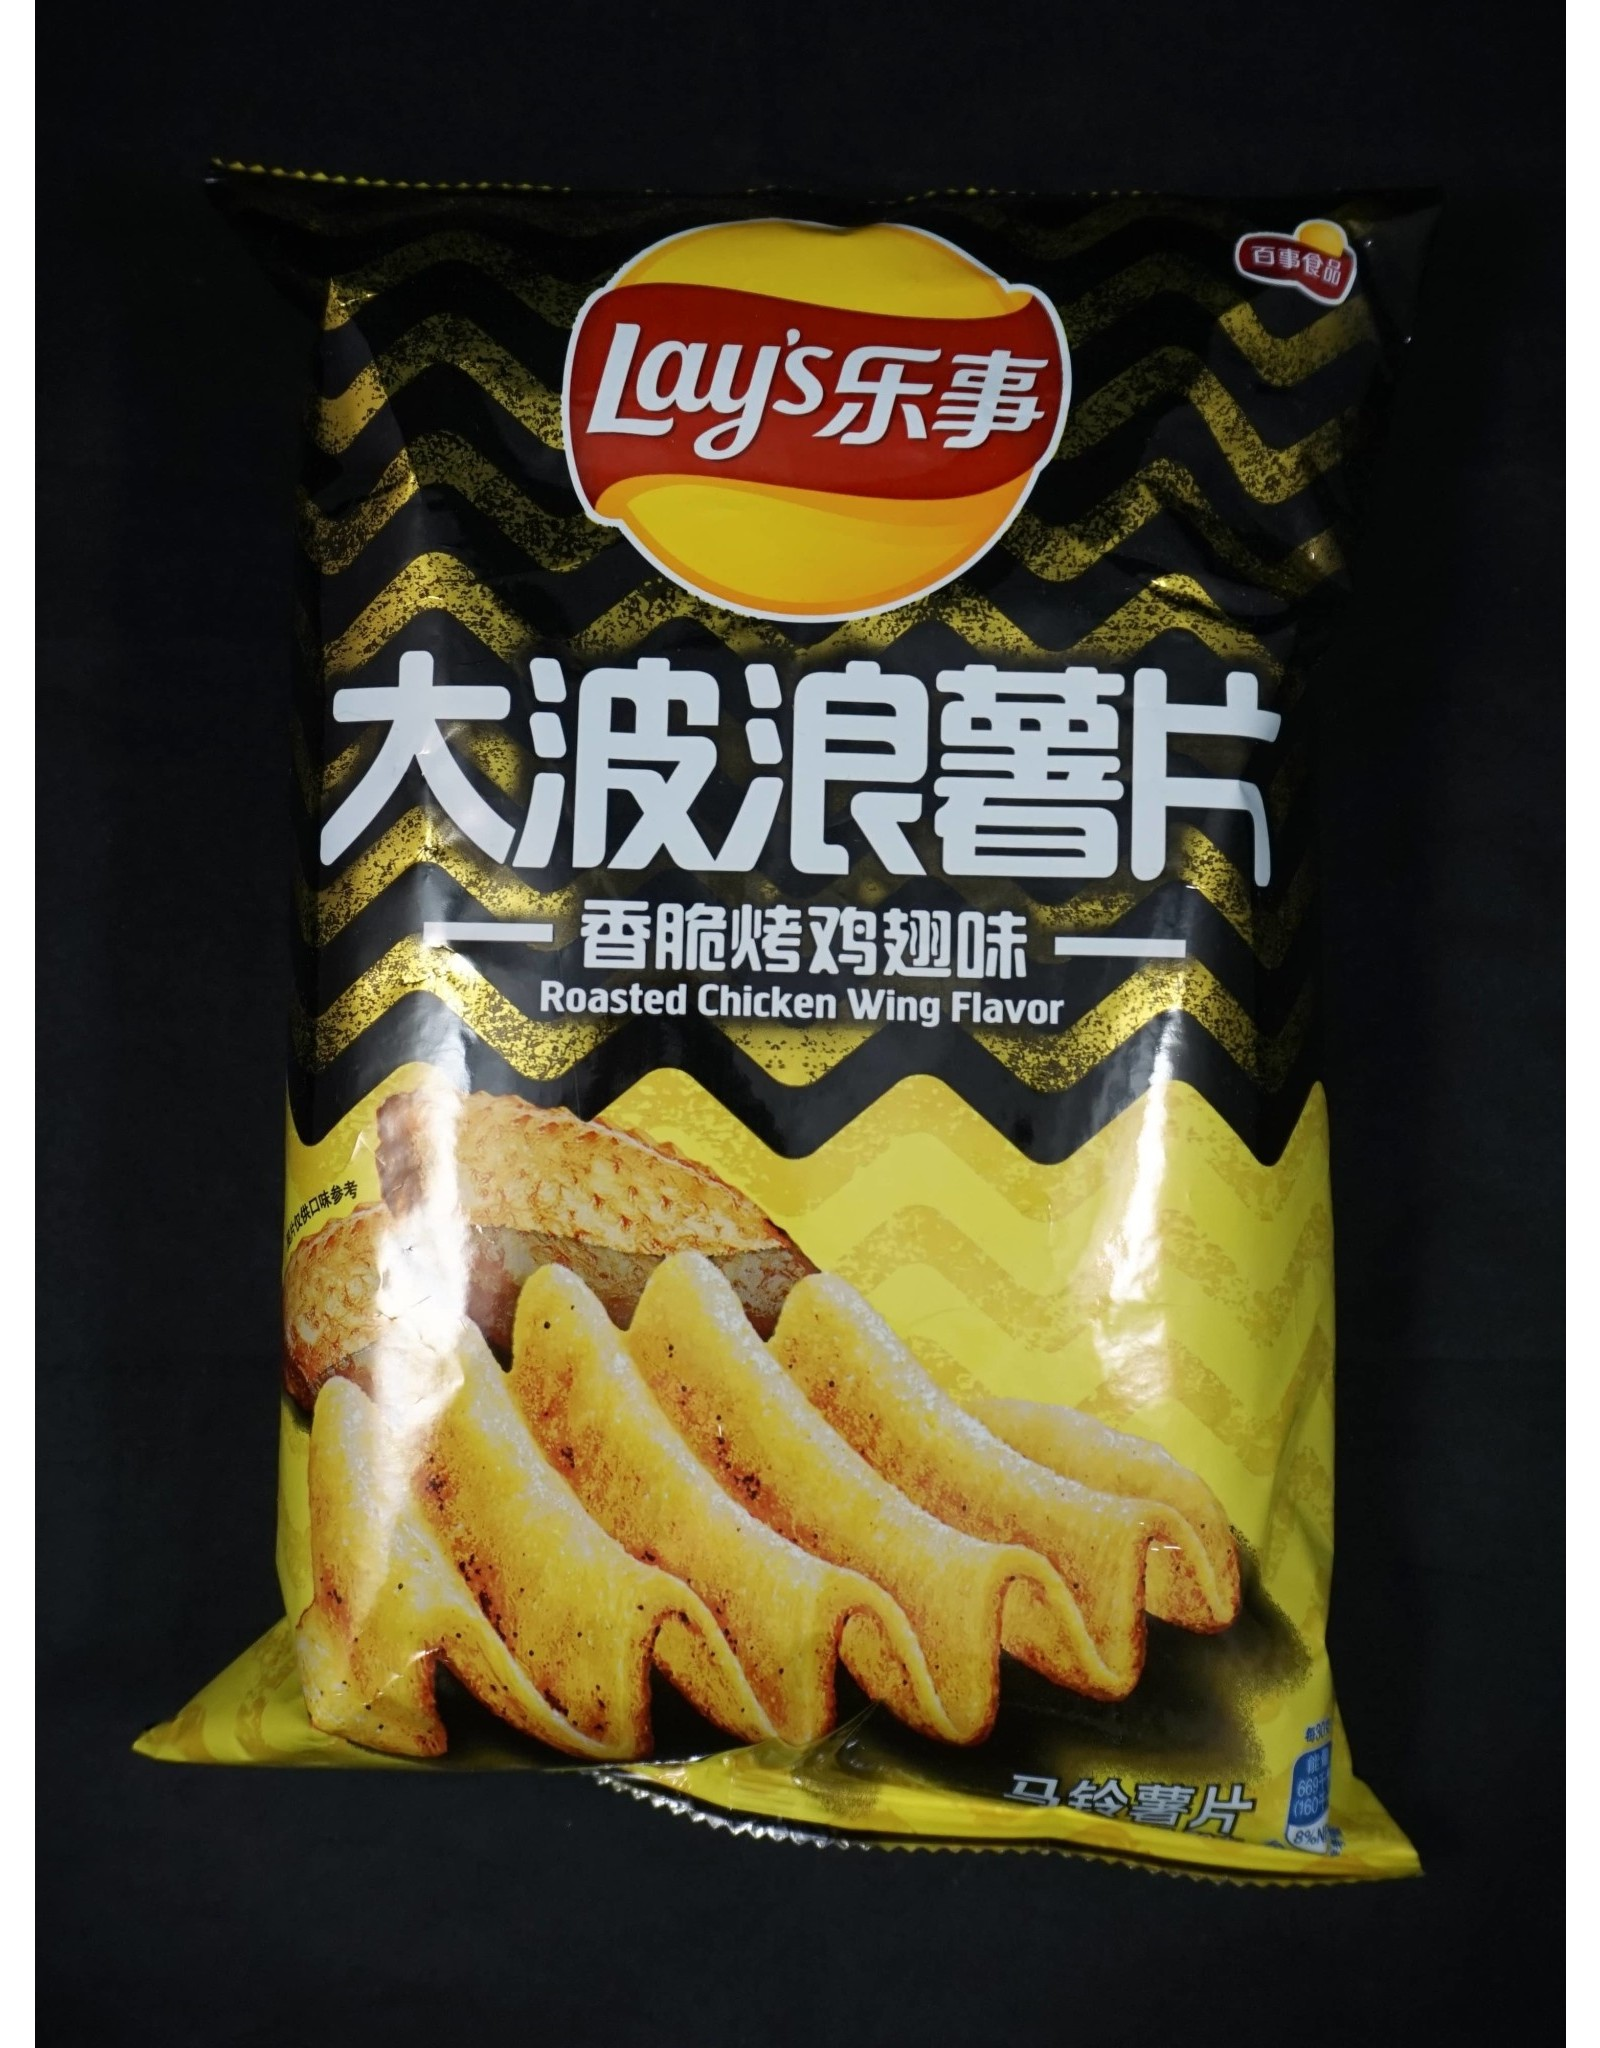 Lays Lays Roasted Chicken Wing